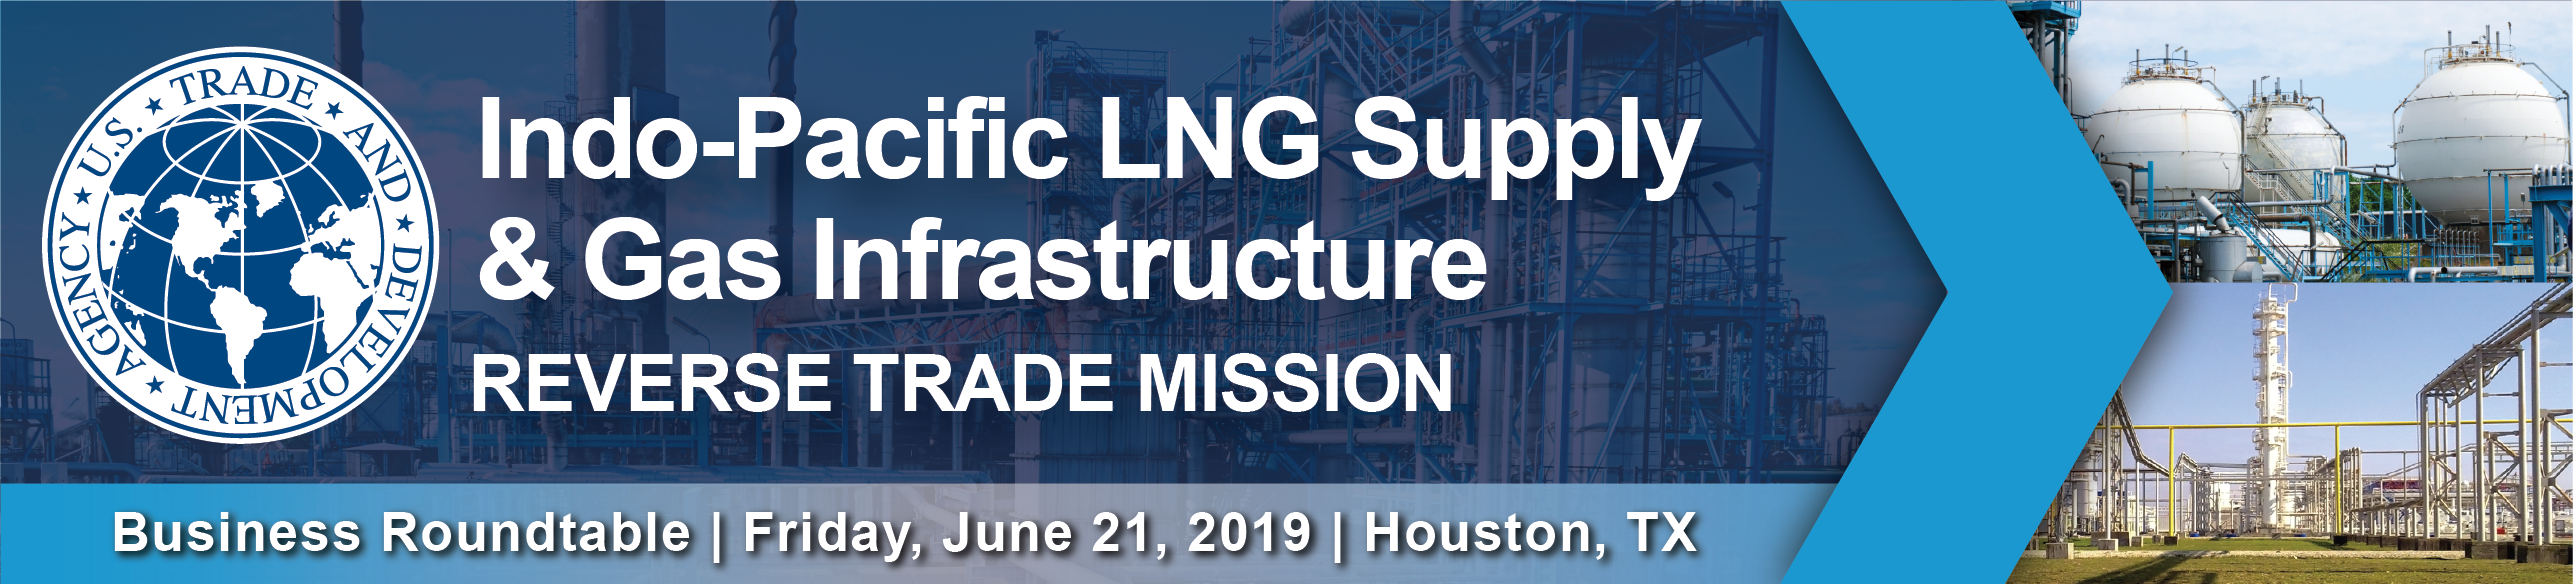 Indo-Pacific LNG Supply & Natural Gas Infrastructure Business roundtable June 21 header-01